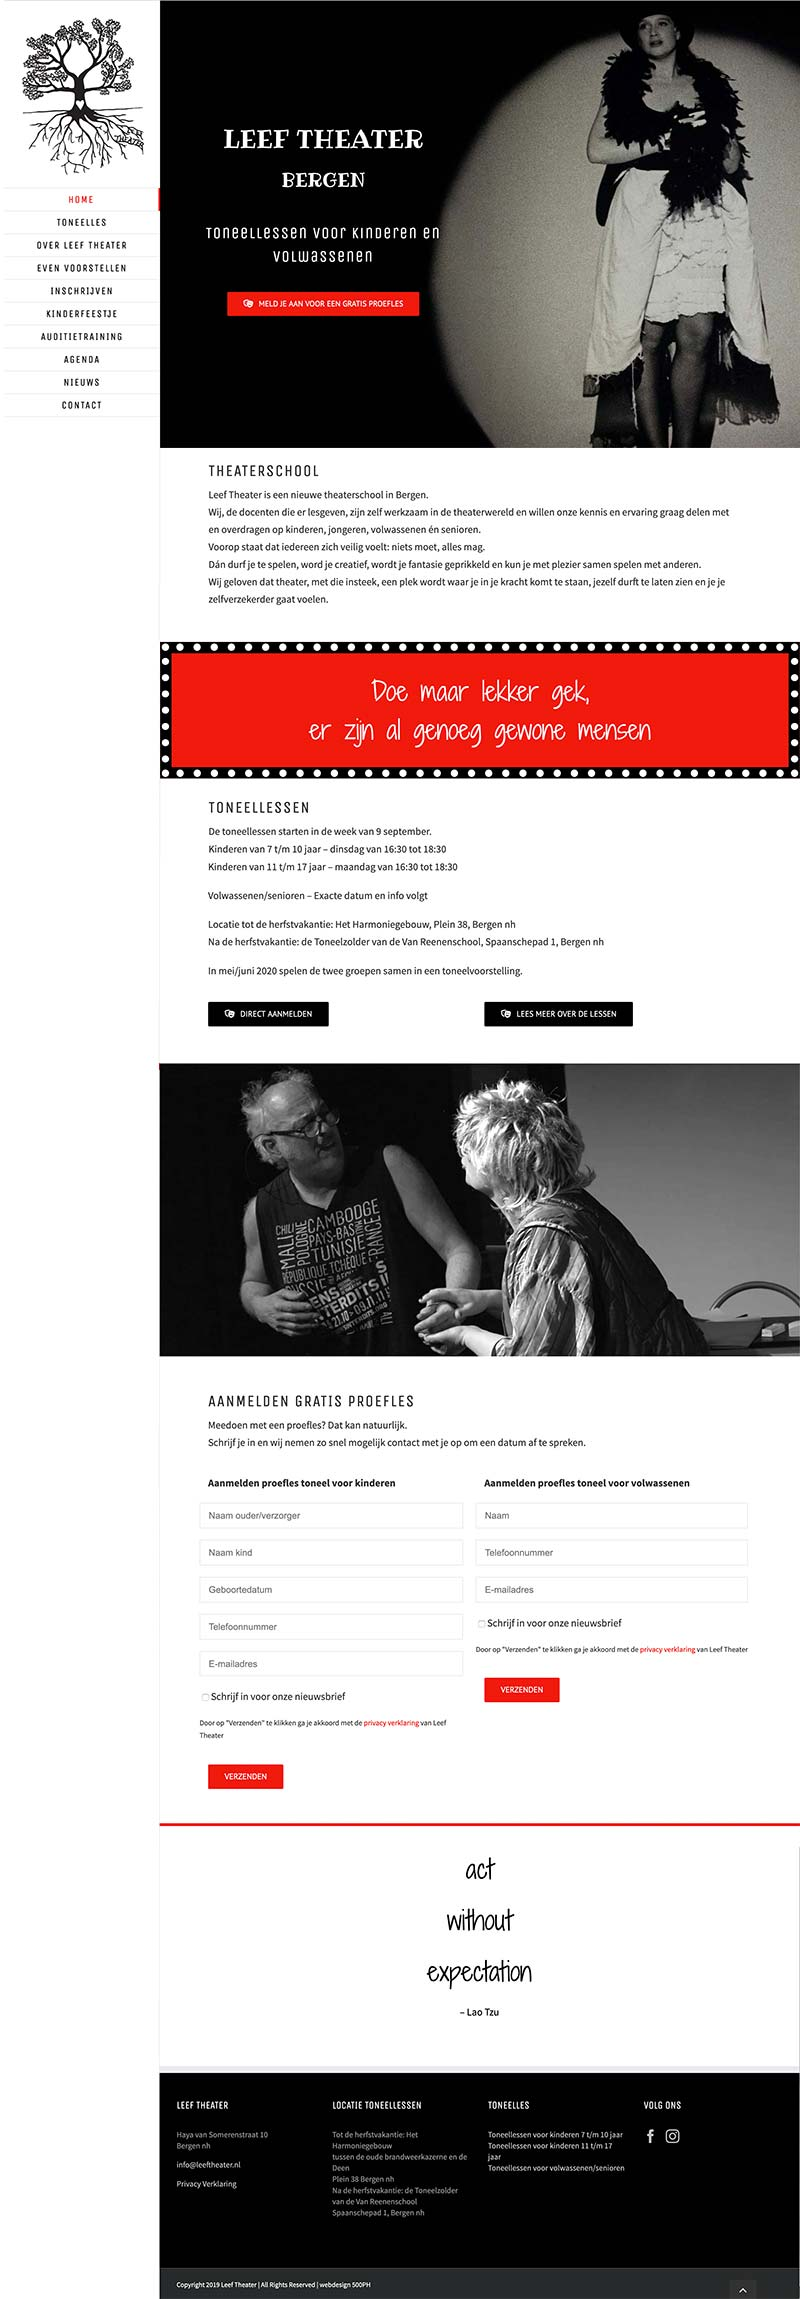 Leef Theater Bergen - website